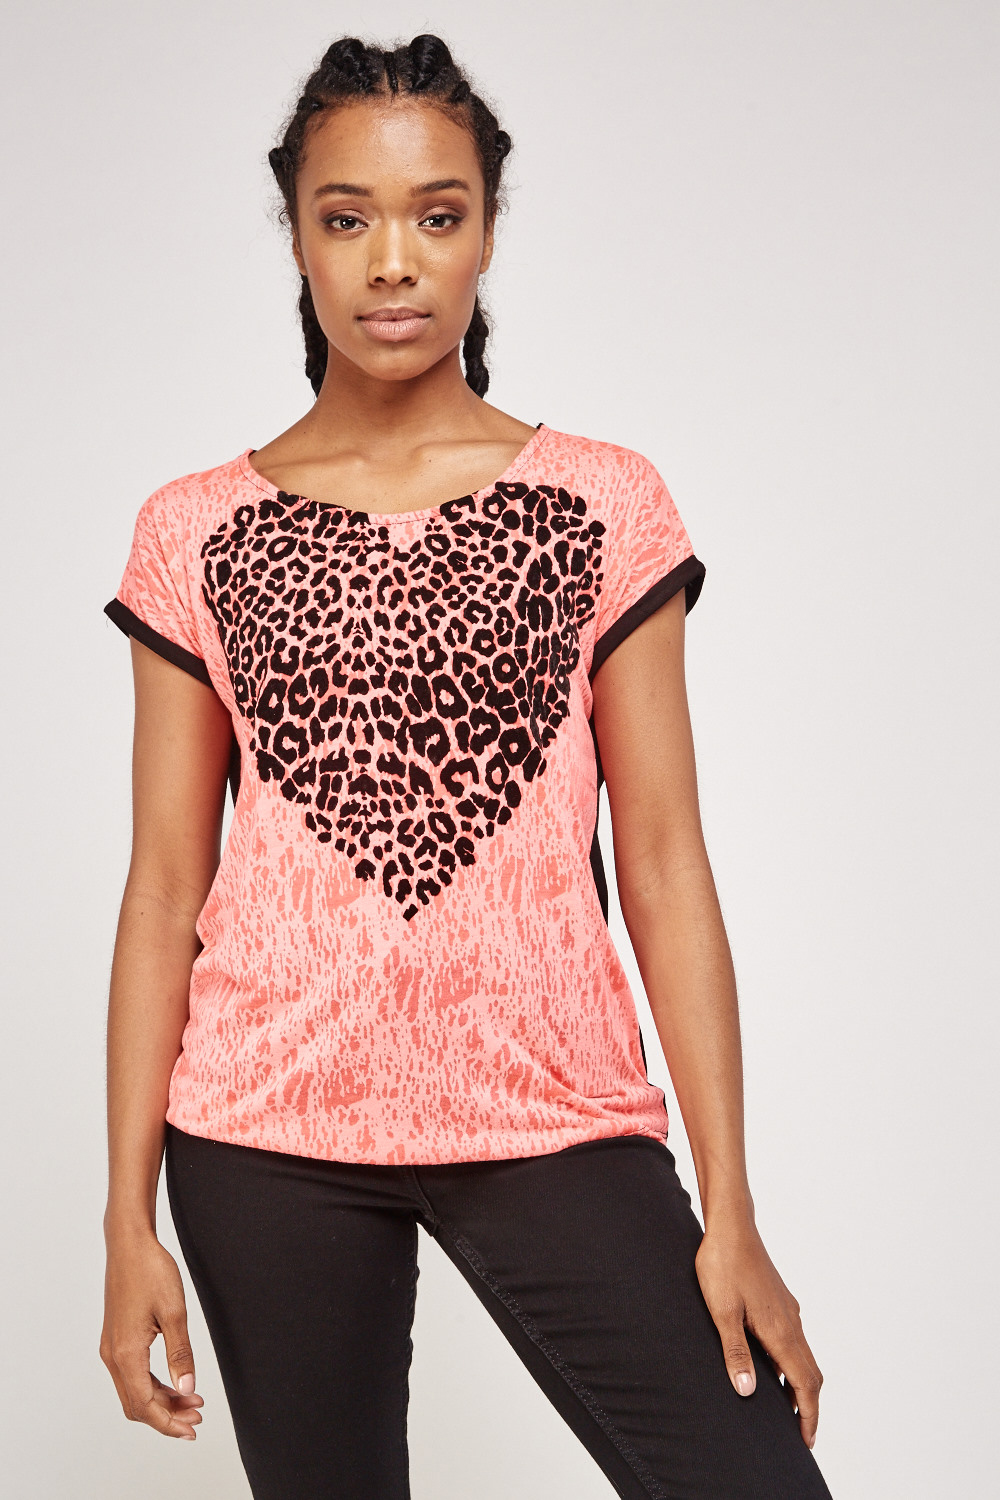 1c82d150f48cca Contrast Animal Heart Print Top - Pink/Black - Just £5